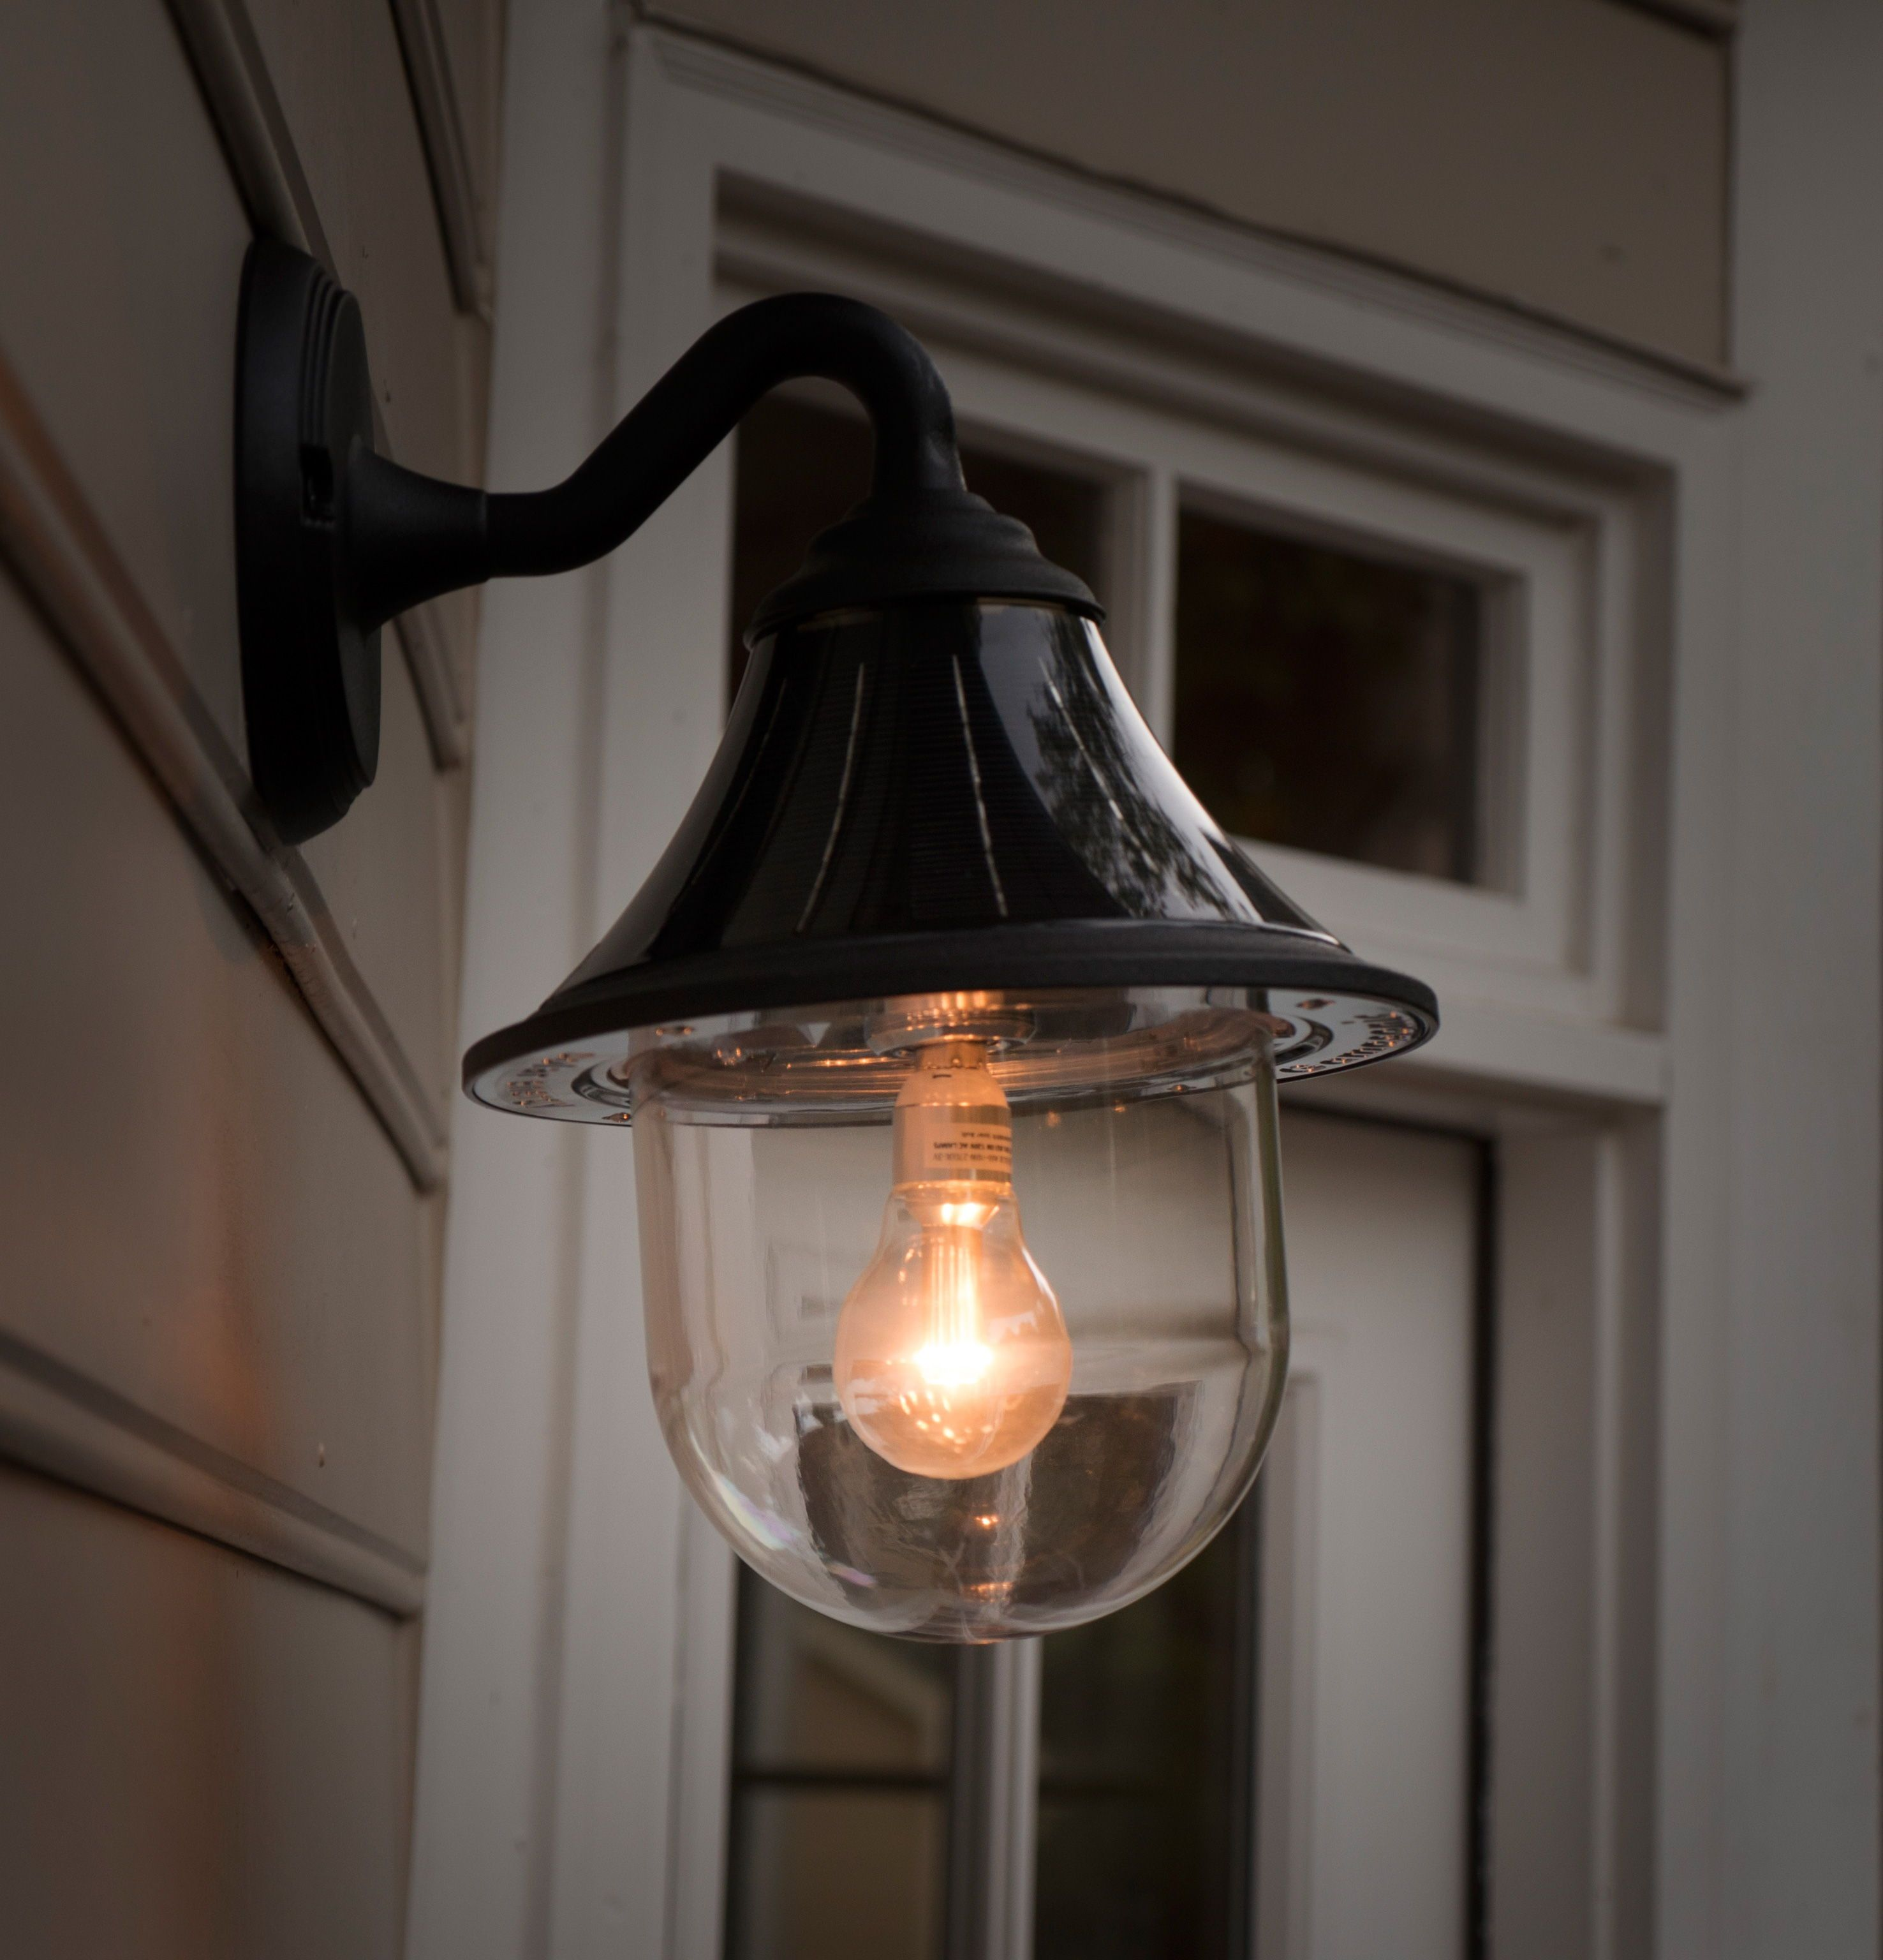 hight resolution of perfect for home and garden diy specialists looking to upgrade their exterior outdoor lighting no electrical wiring required